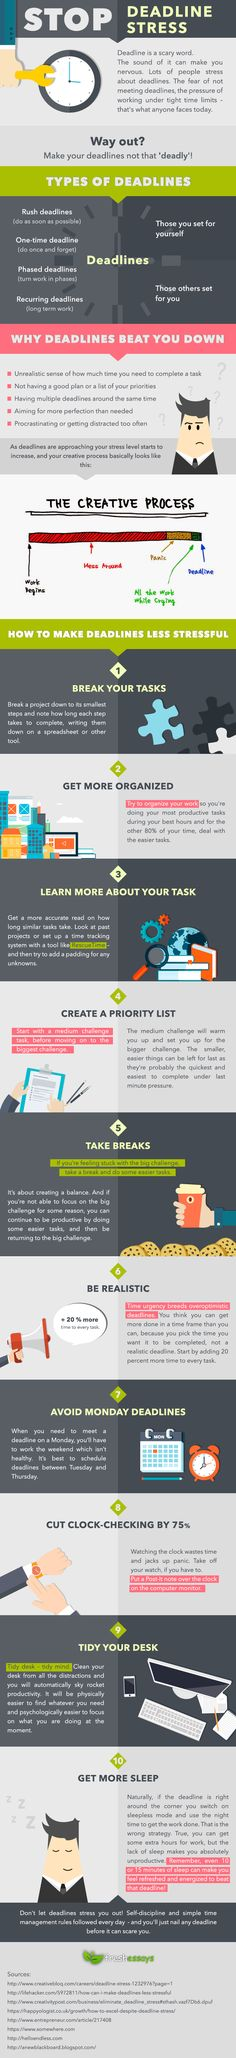 10 Ways To Kill Deadline Stress - Infographic